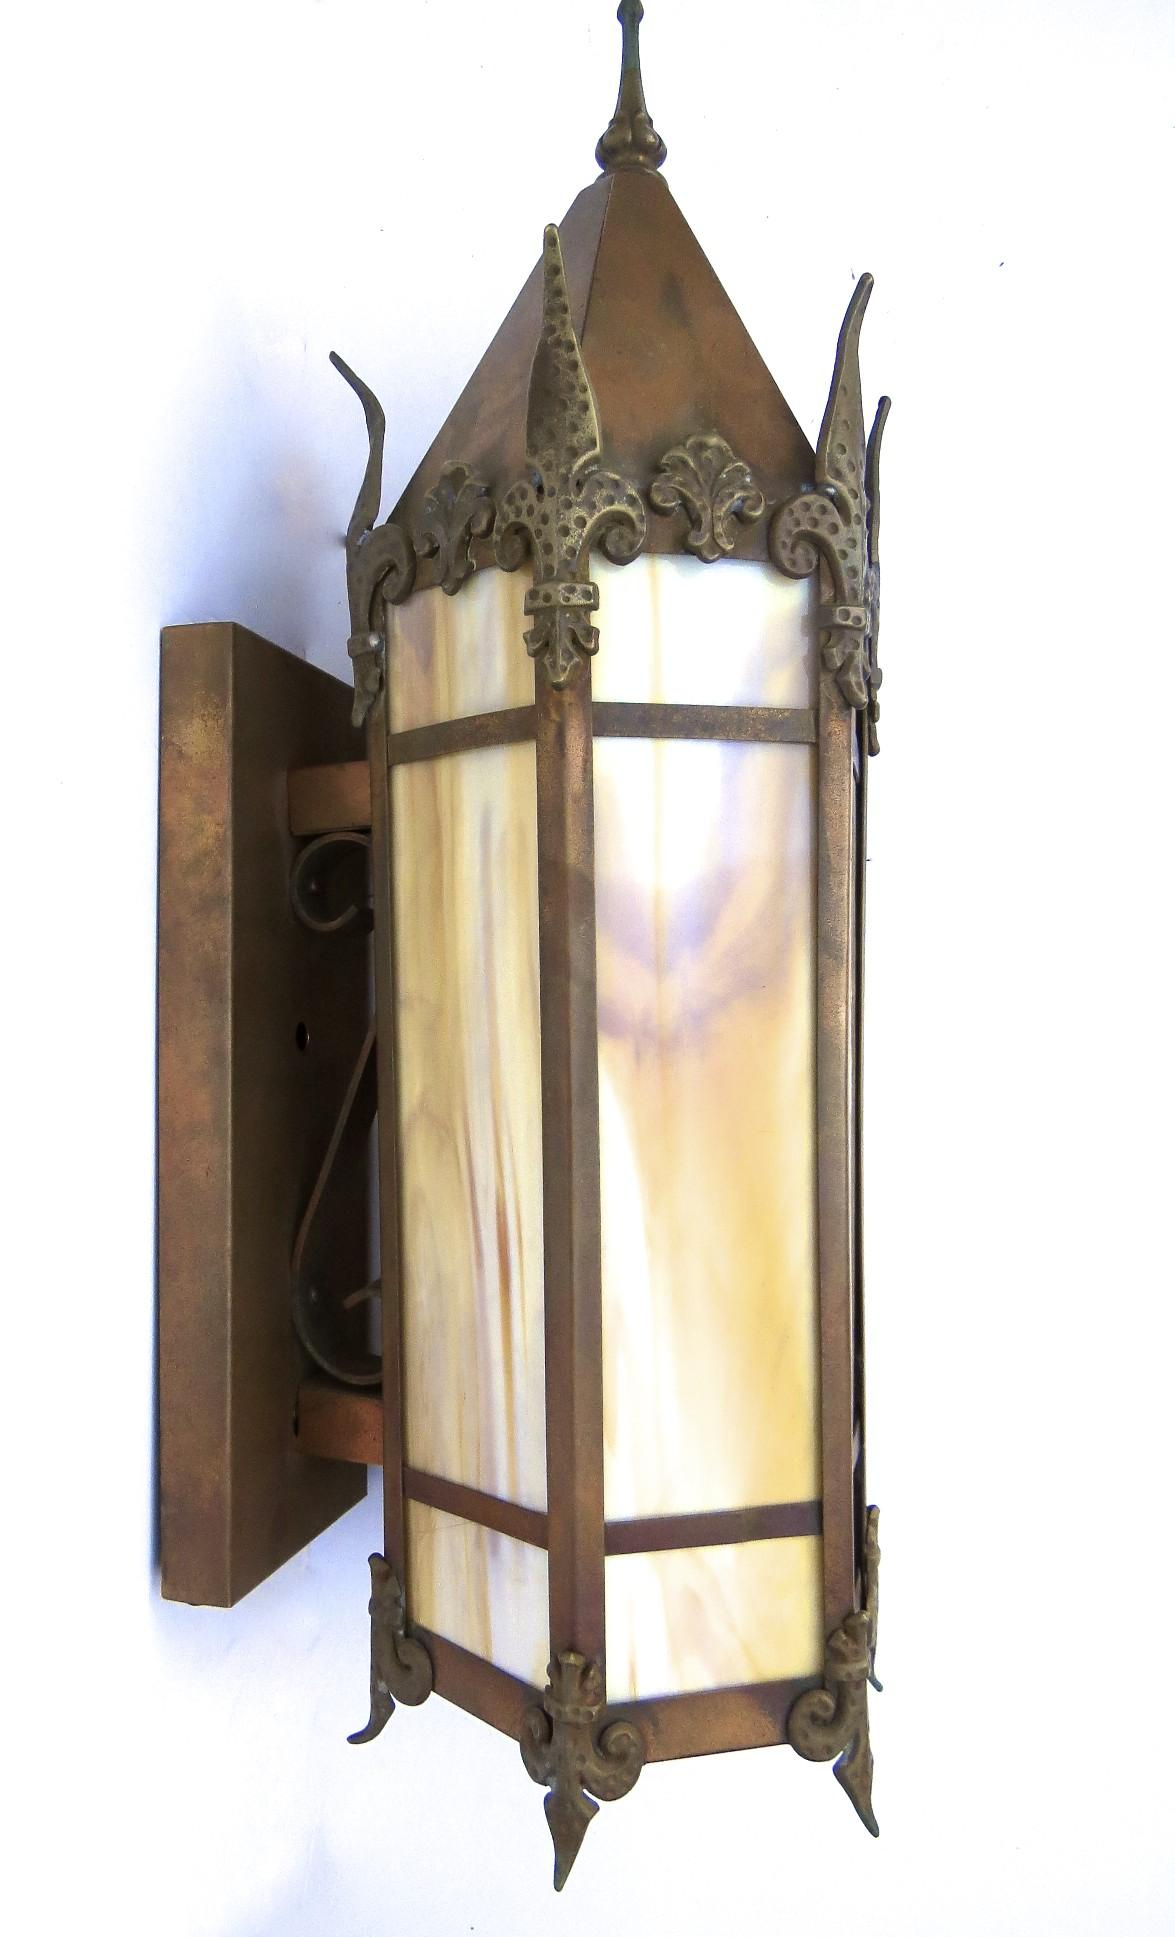 Copper Gothic Wall Sconce Peaked Top from blacktulip on Ruby Lane